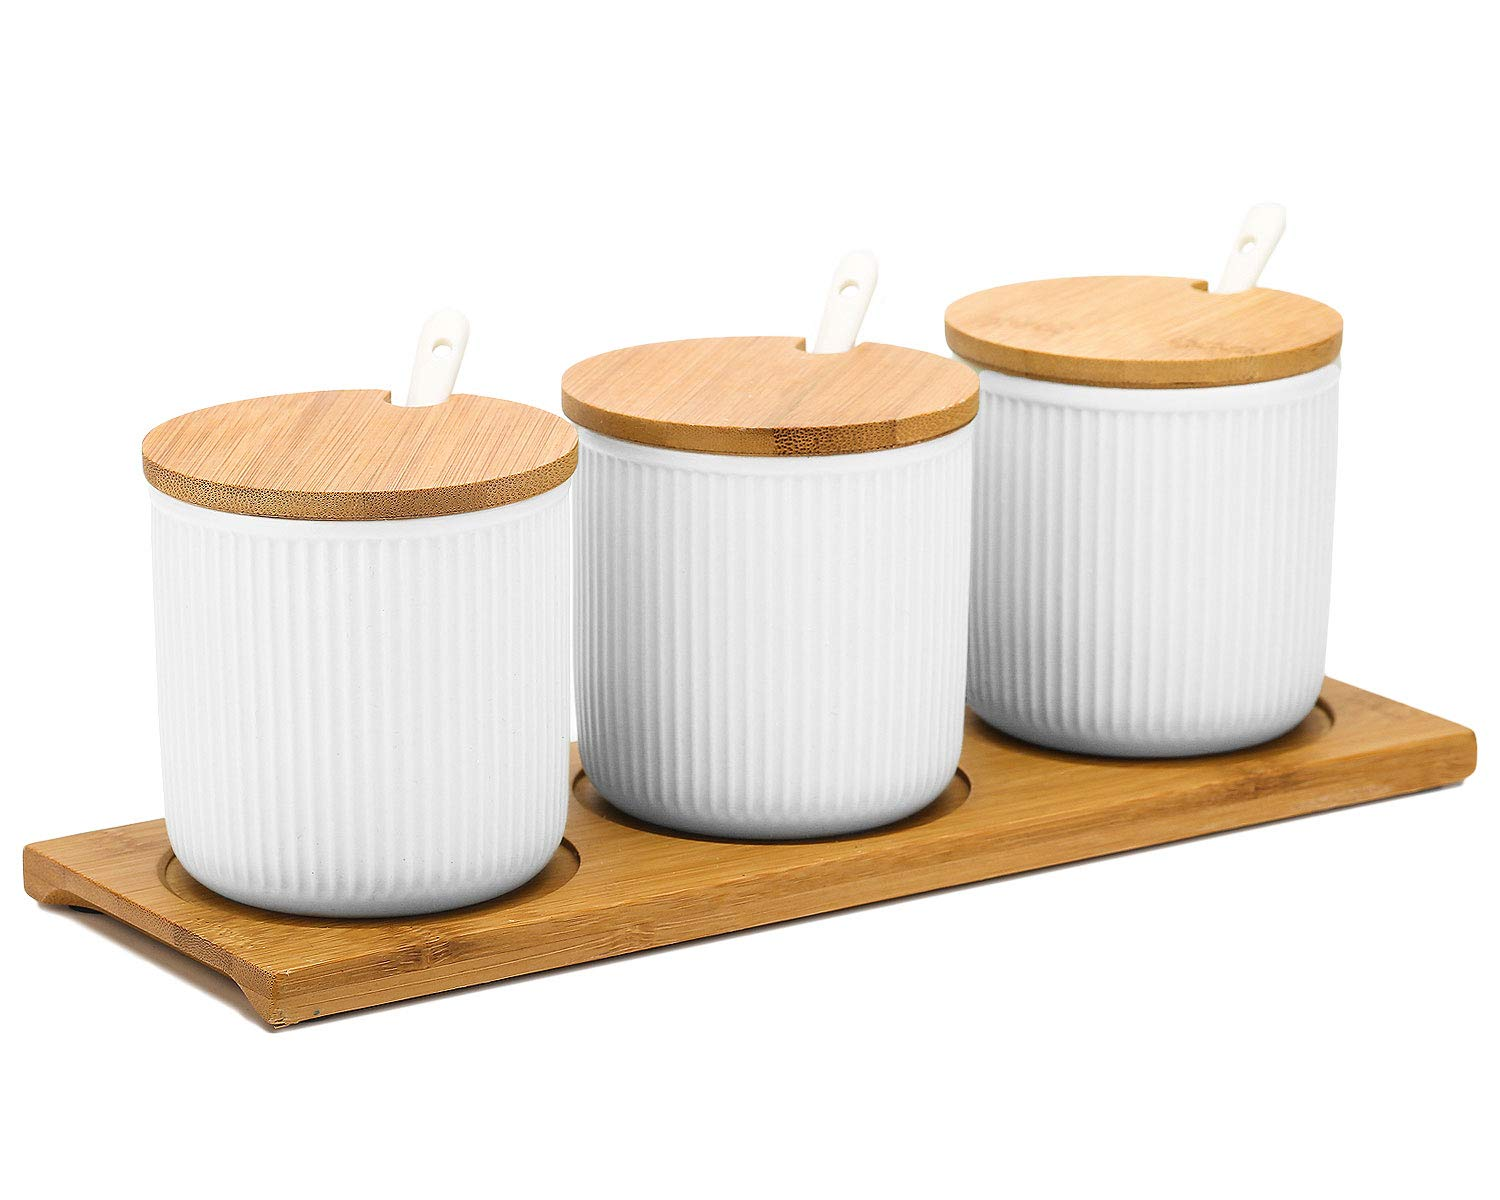 VanEnjoy Ceramic Sugar Spice Containers Porcelain Jar with Bamboo Lids Tray and Spoons Muti-Functional Round Condiment Jar for Home Set of 3